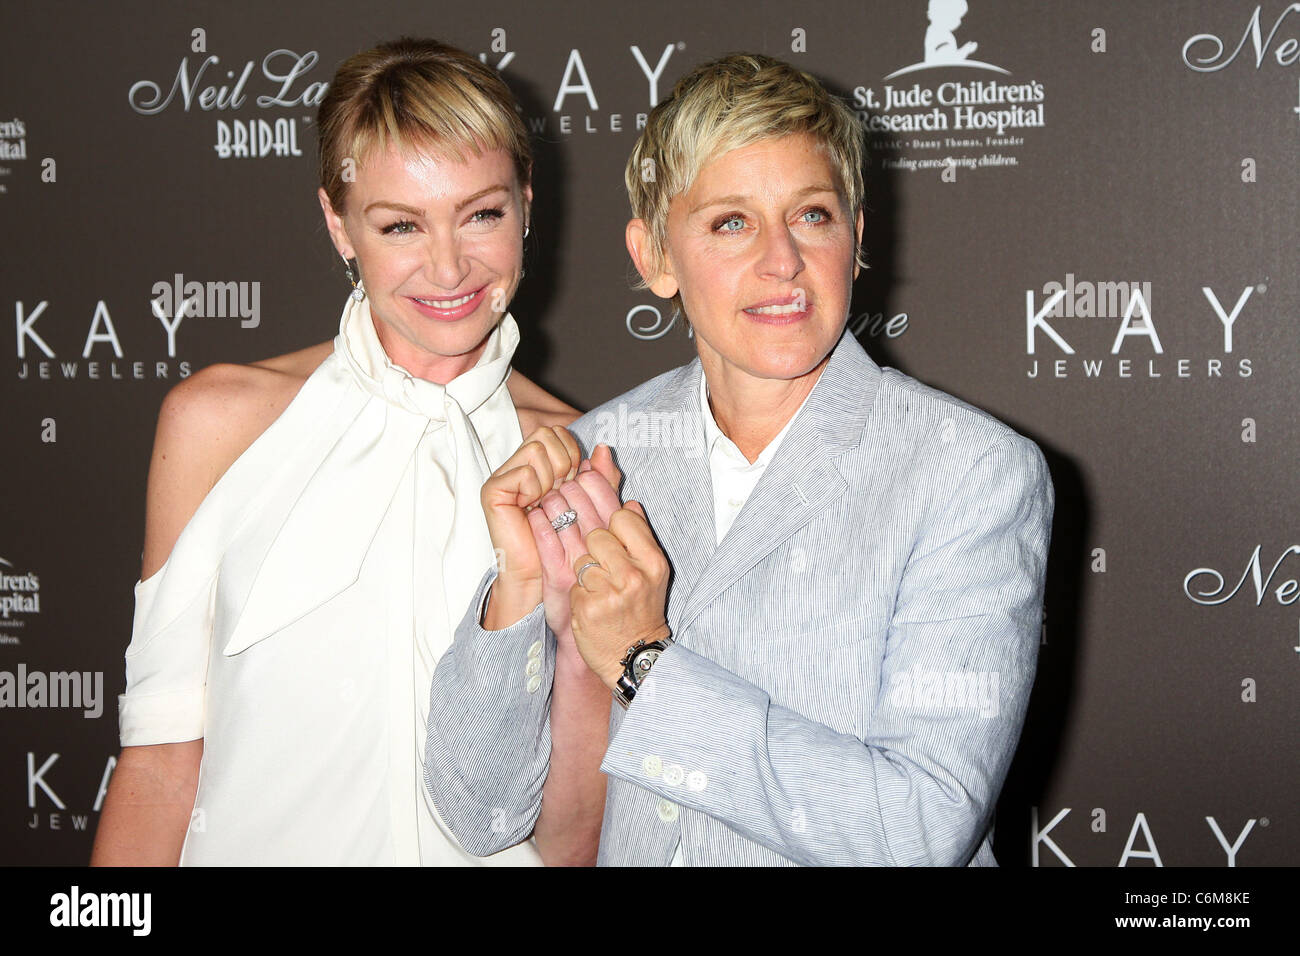 portia derossi amp ellen degeneres show off their wedding